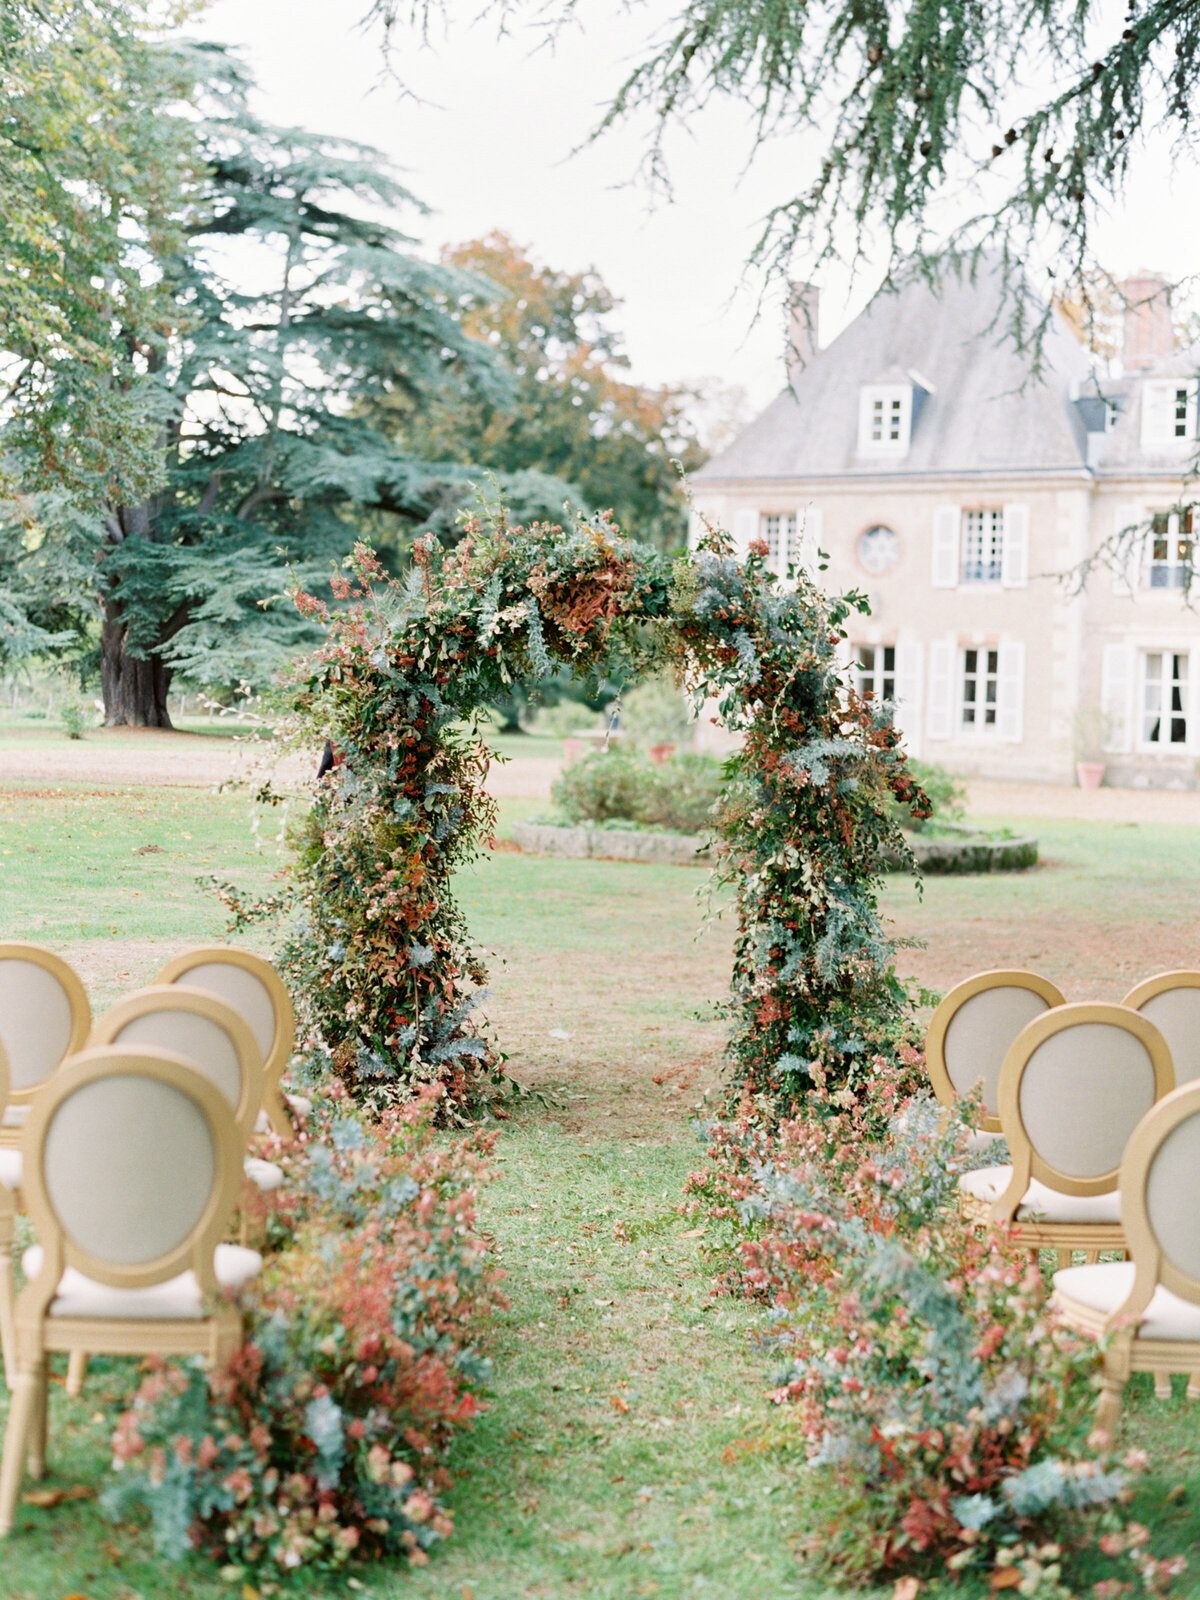 chateau-bouthonvilliers-wedding-paris-wedding-photographer-mackenzie-reiter-photography-4